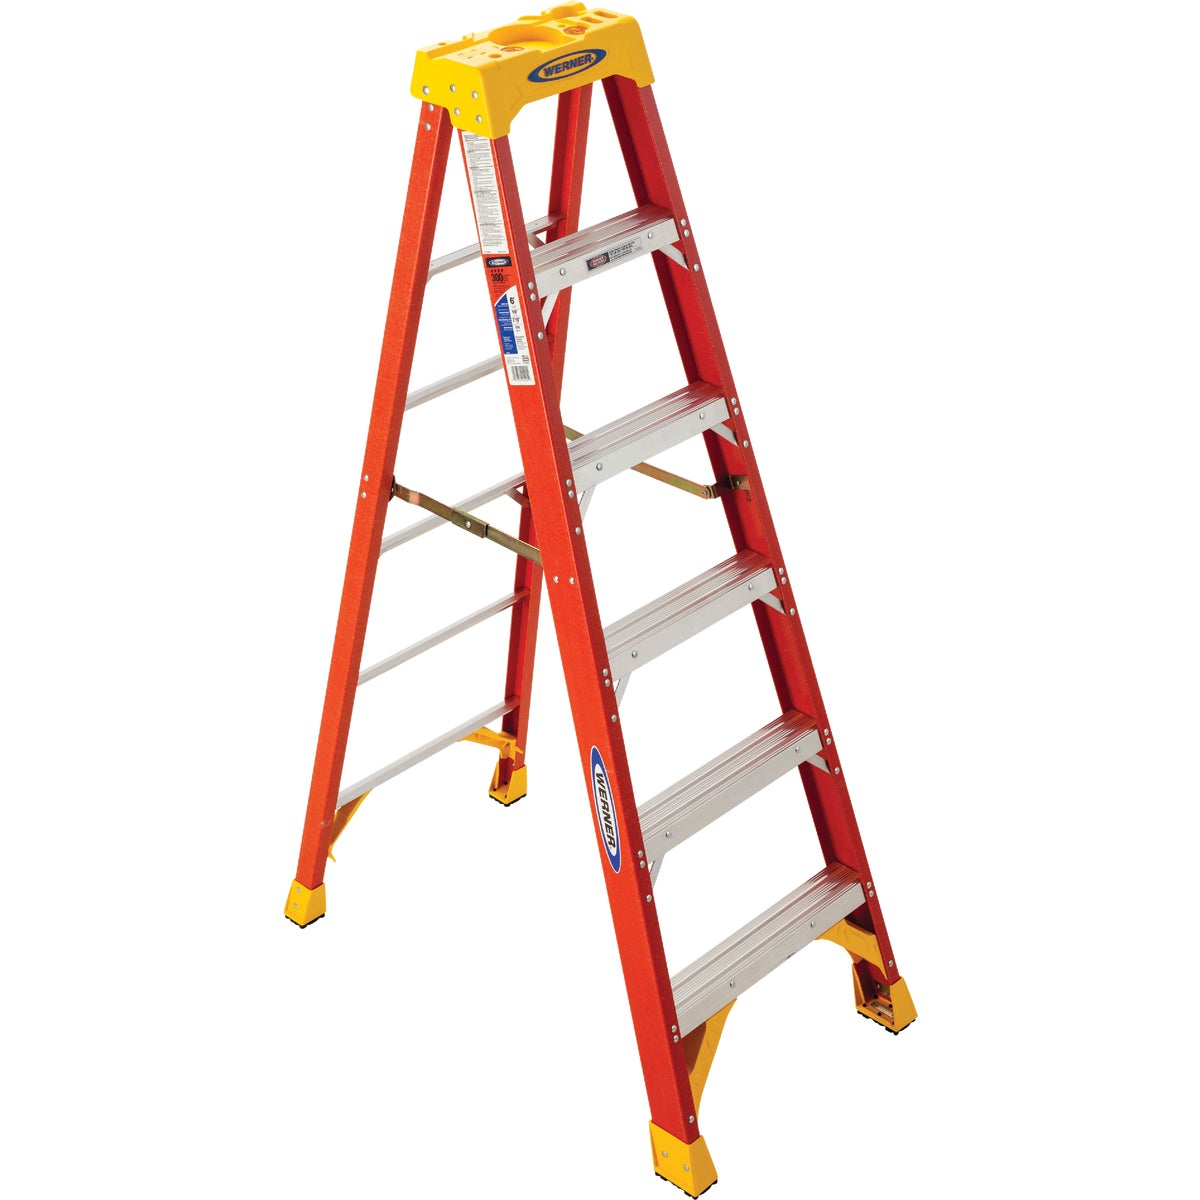 T-1A 6' FBGL STEPLADDER - 6206 by Werner Co